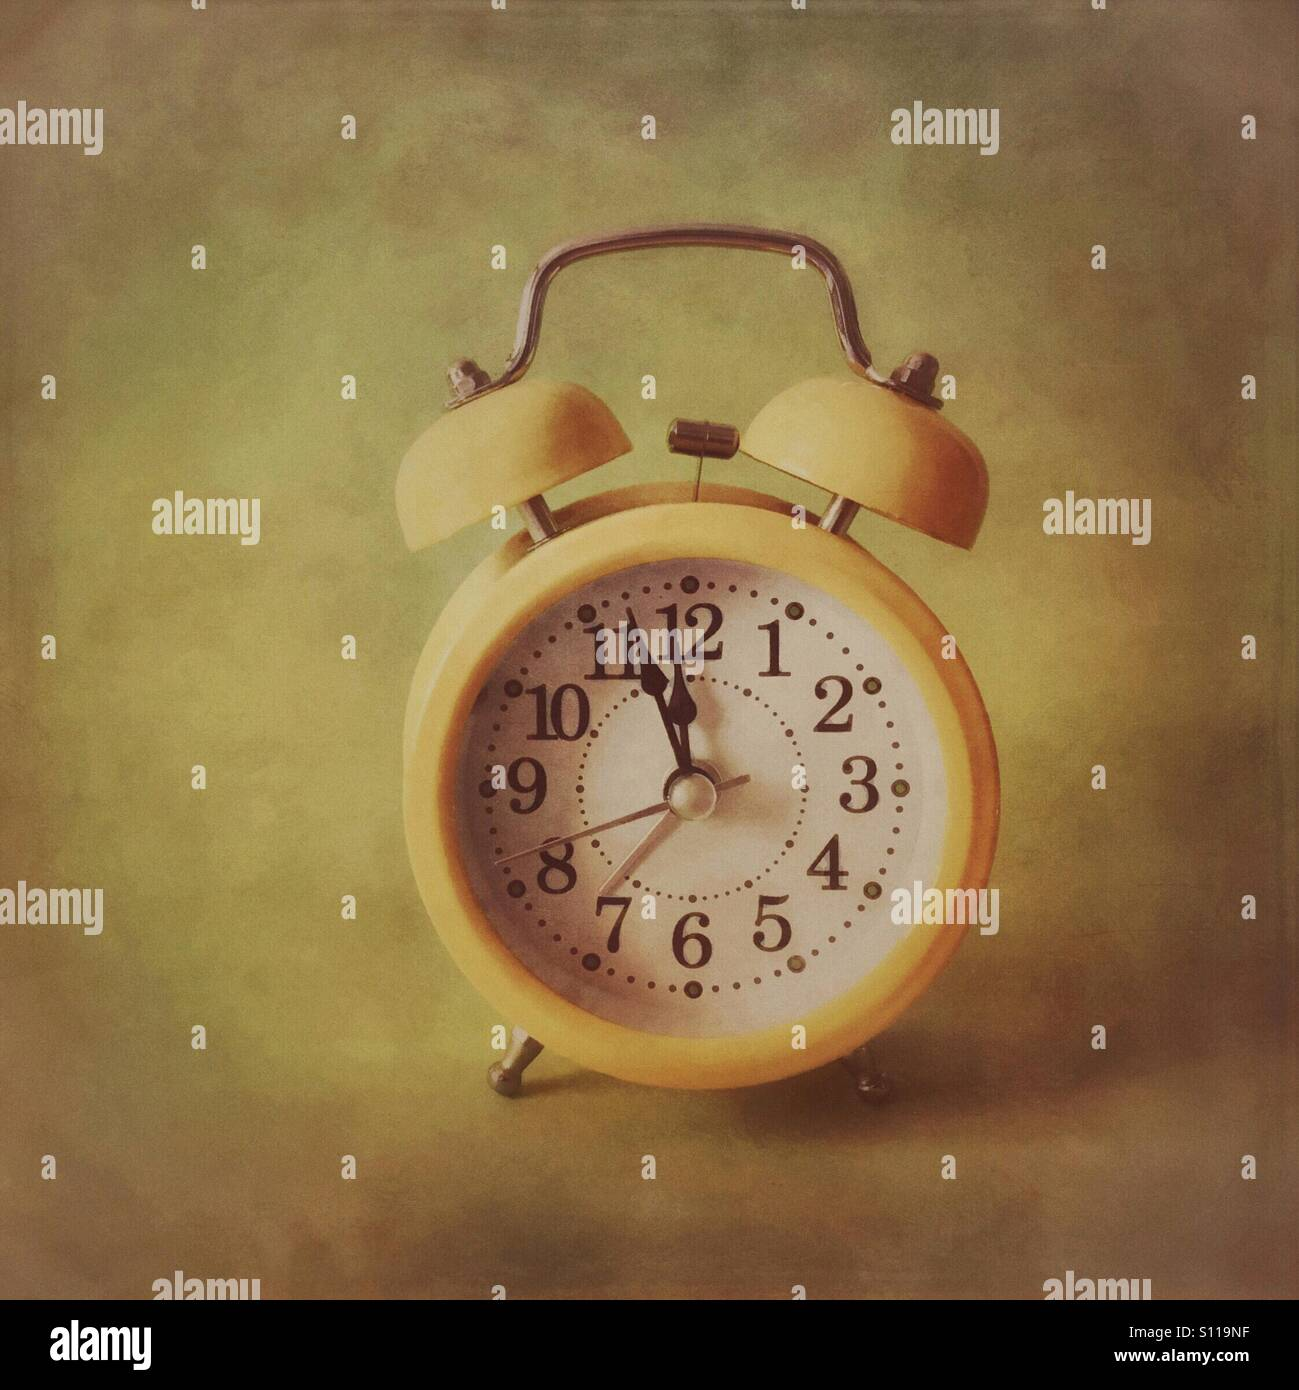 Retro alarm clock - three minutes to midnight - Stock Image